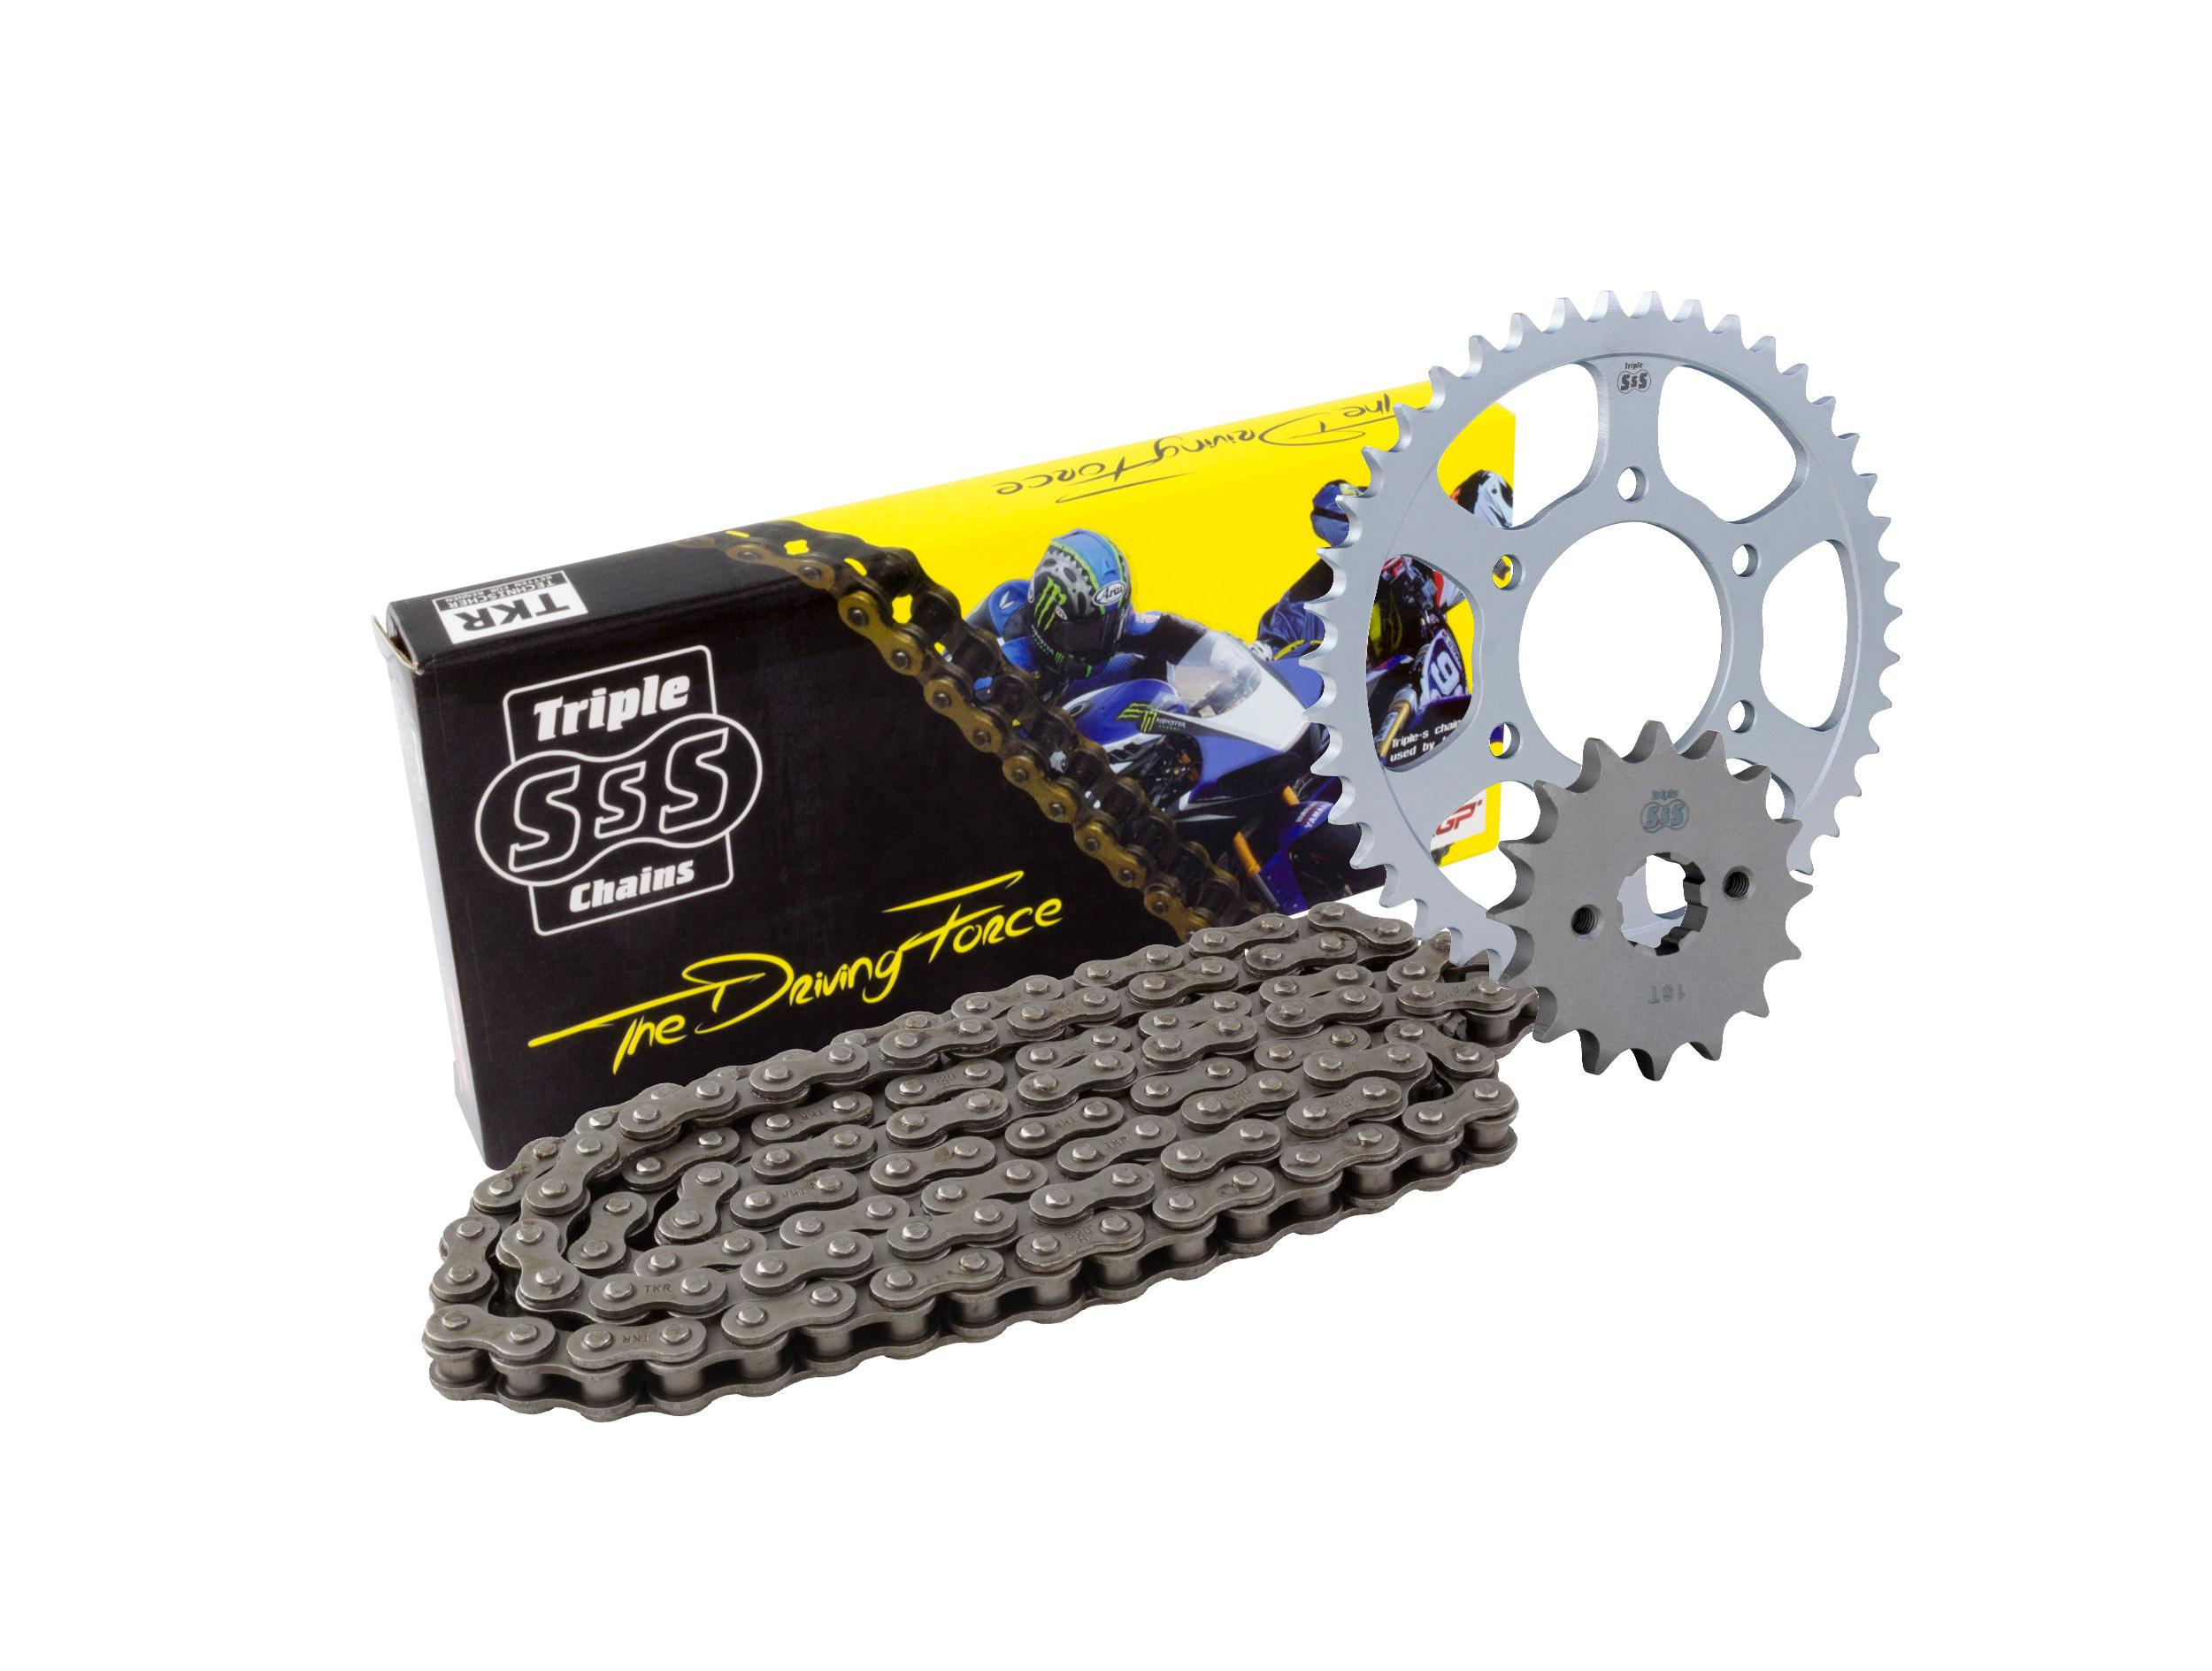 Honda XLR125 W-2 98-02 Chain & Sprocket Kit: 17T Front, 51T Rear, HD Chain 428H 130Link